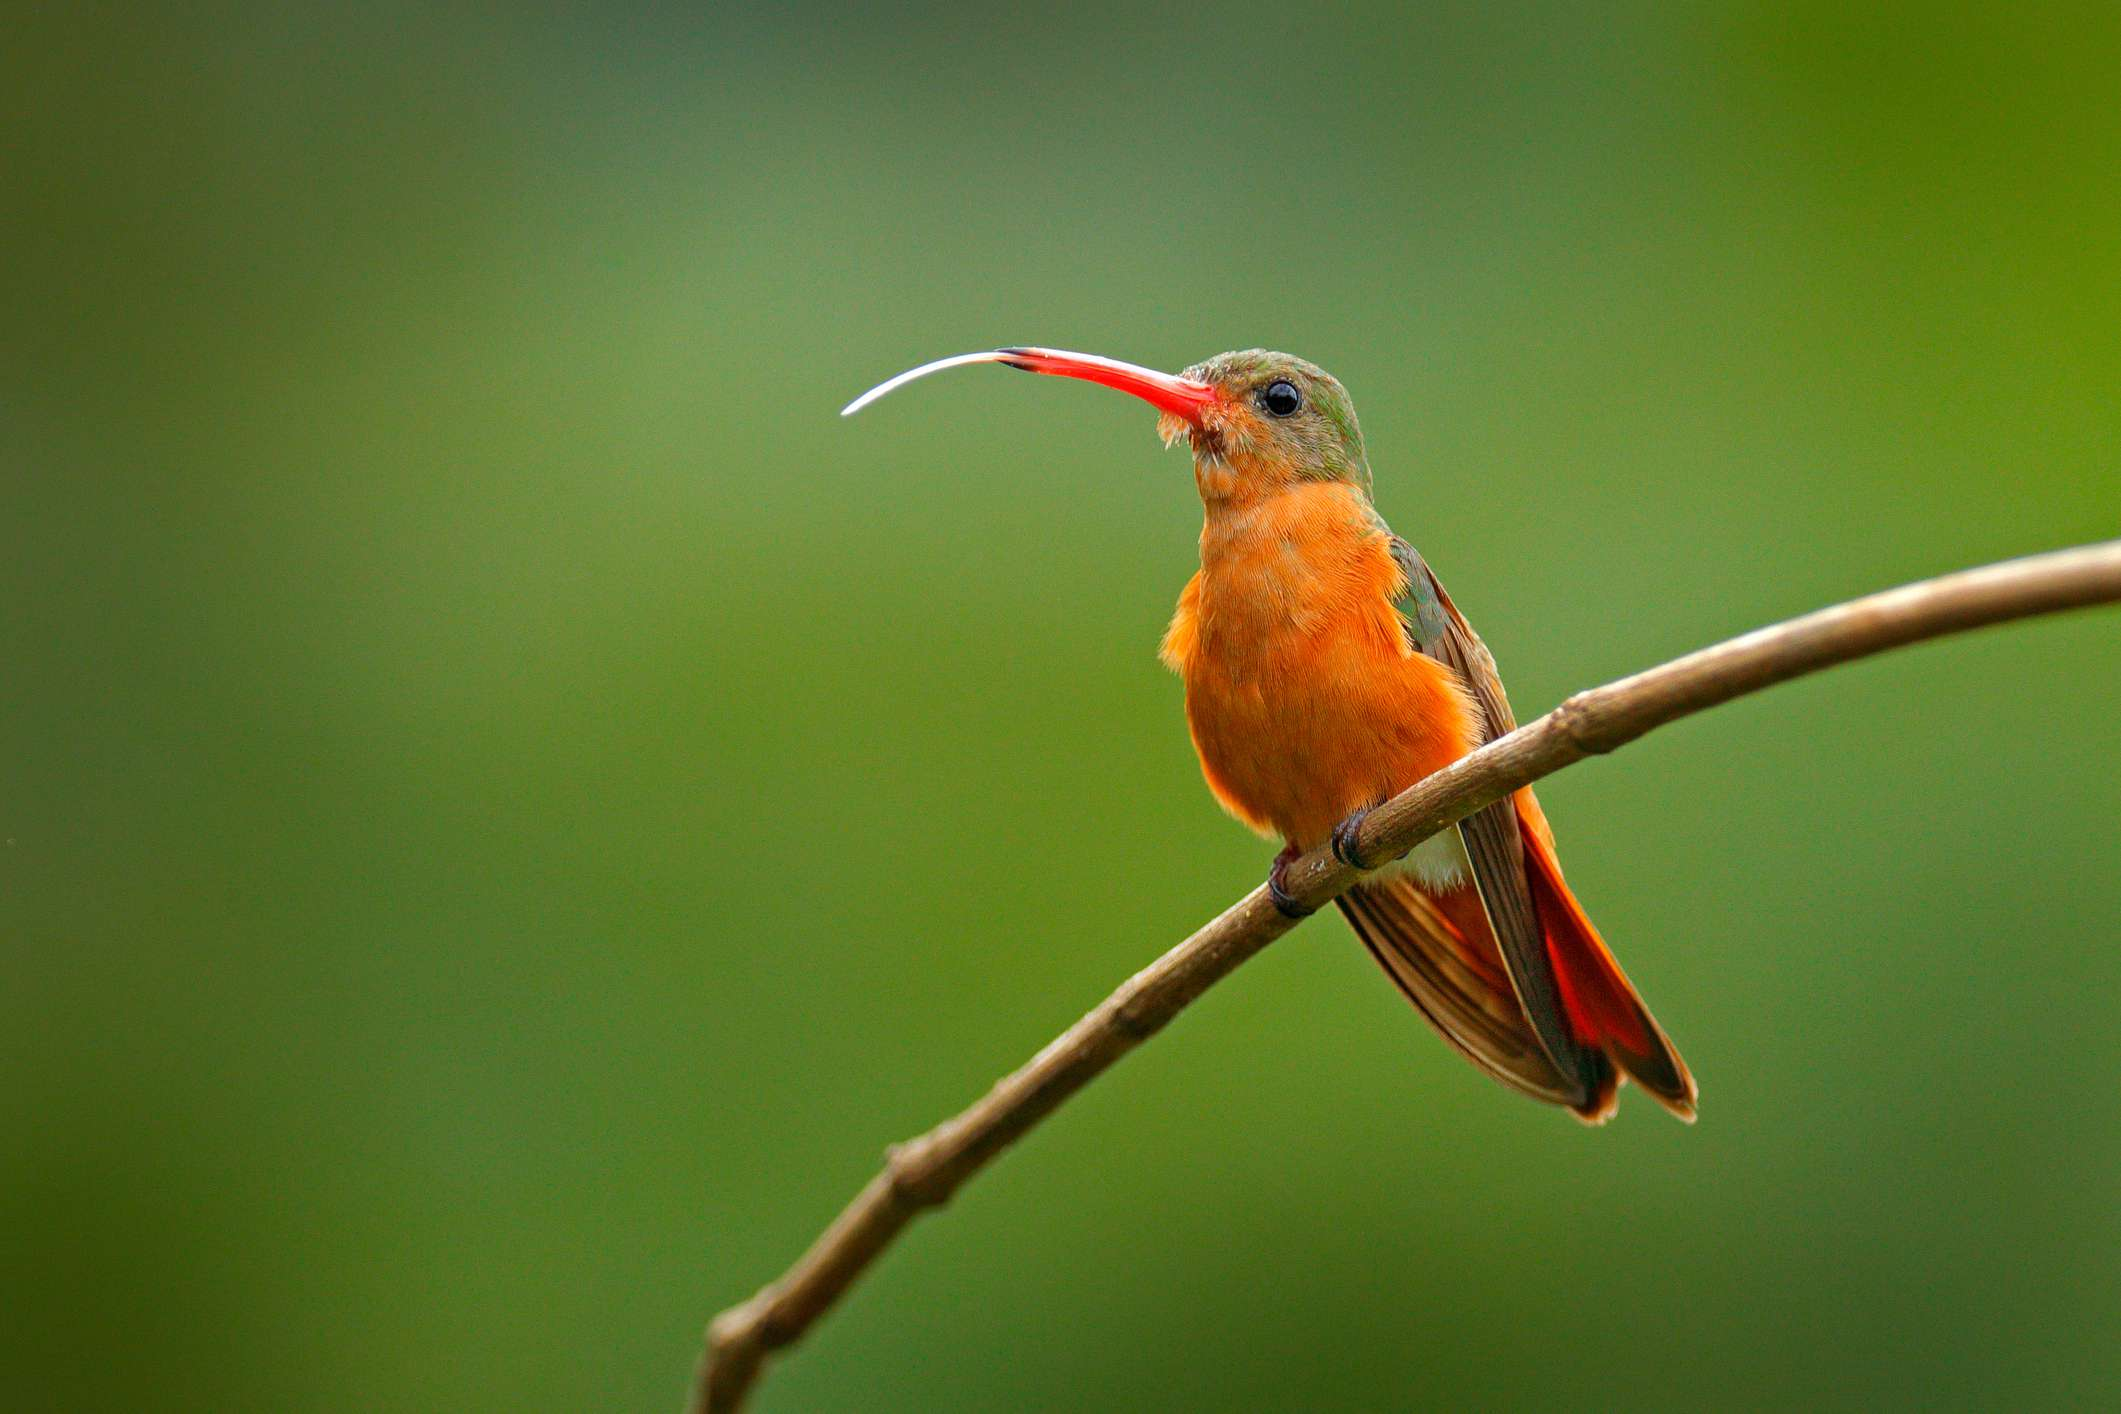 Cinnamon hummingbird with tongue perched out on a branch